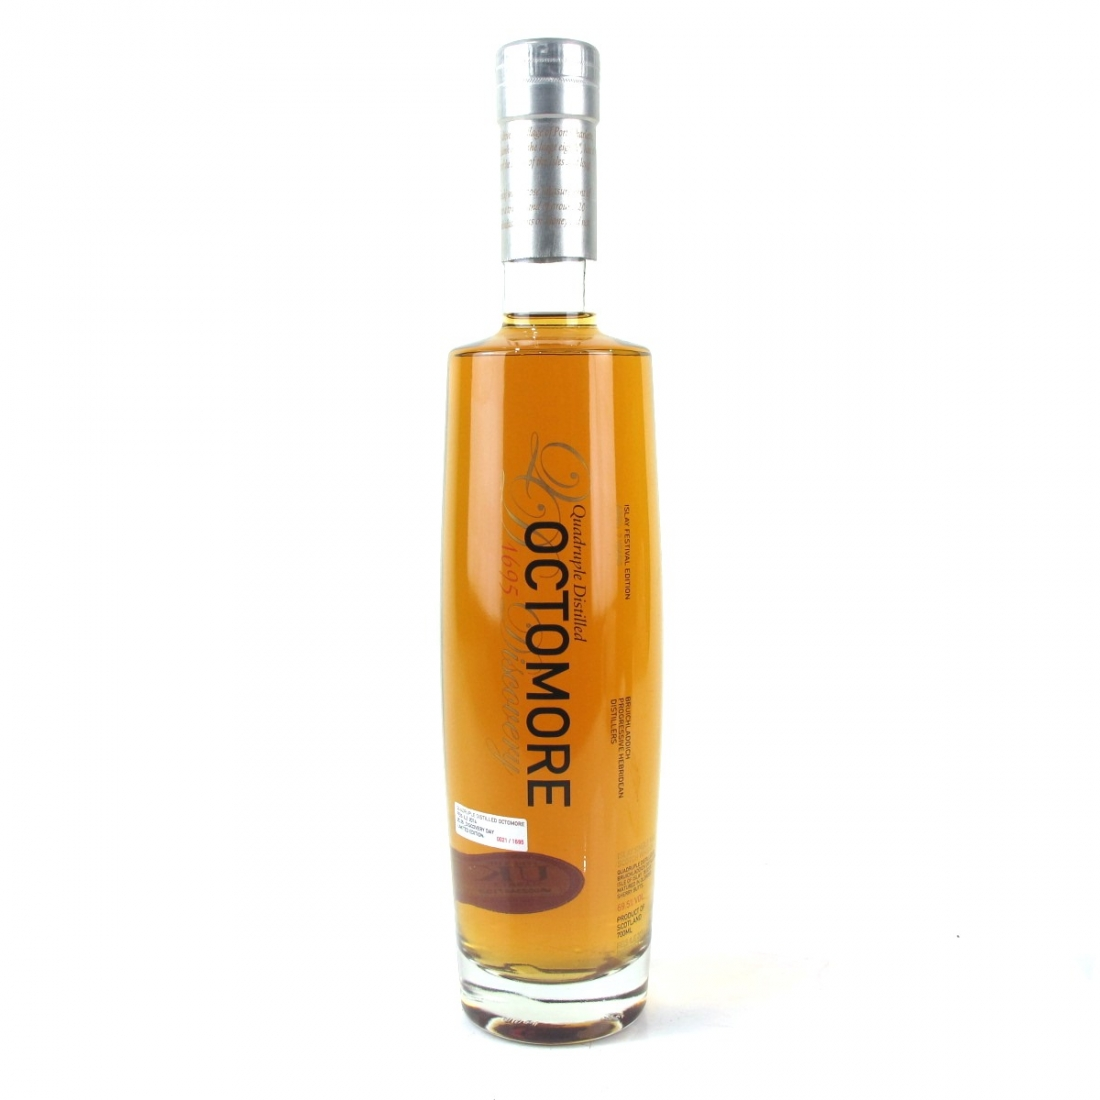 Octomore 1695 Discovery / Feis Ile 2014